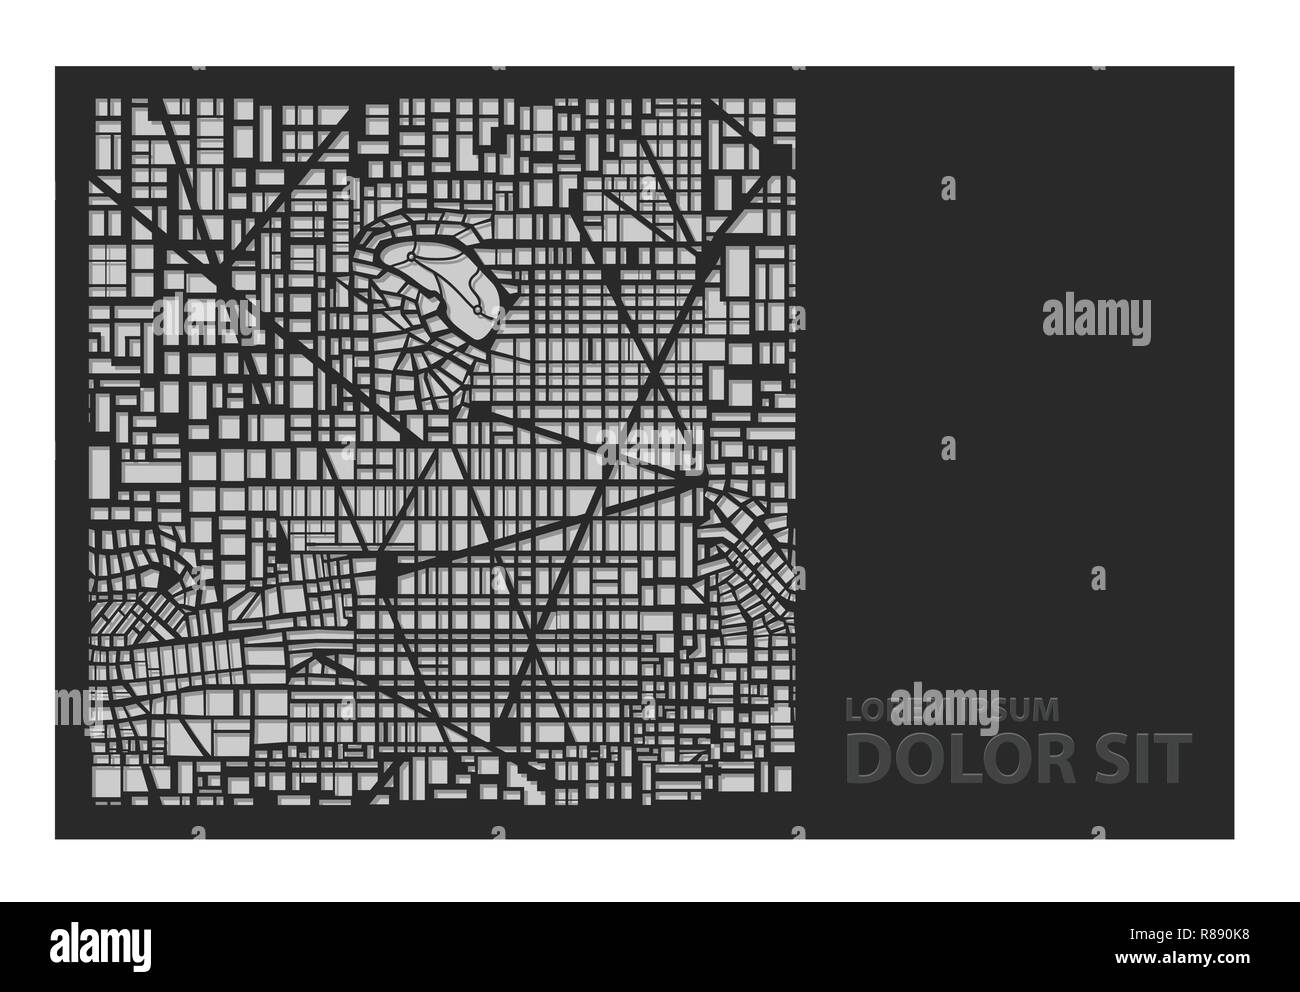 Laser cutting of stencils for decorative art  Background